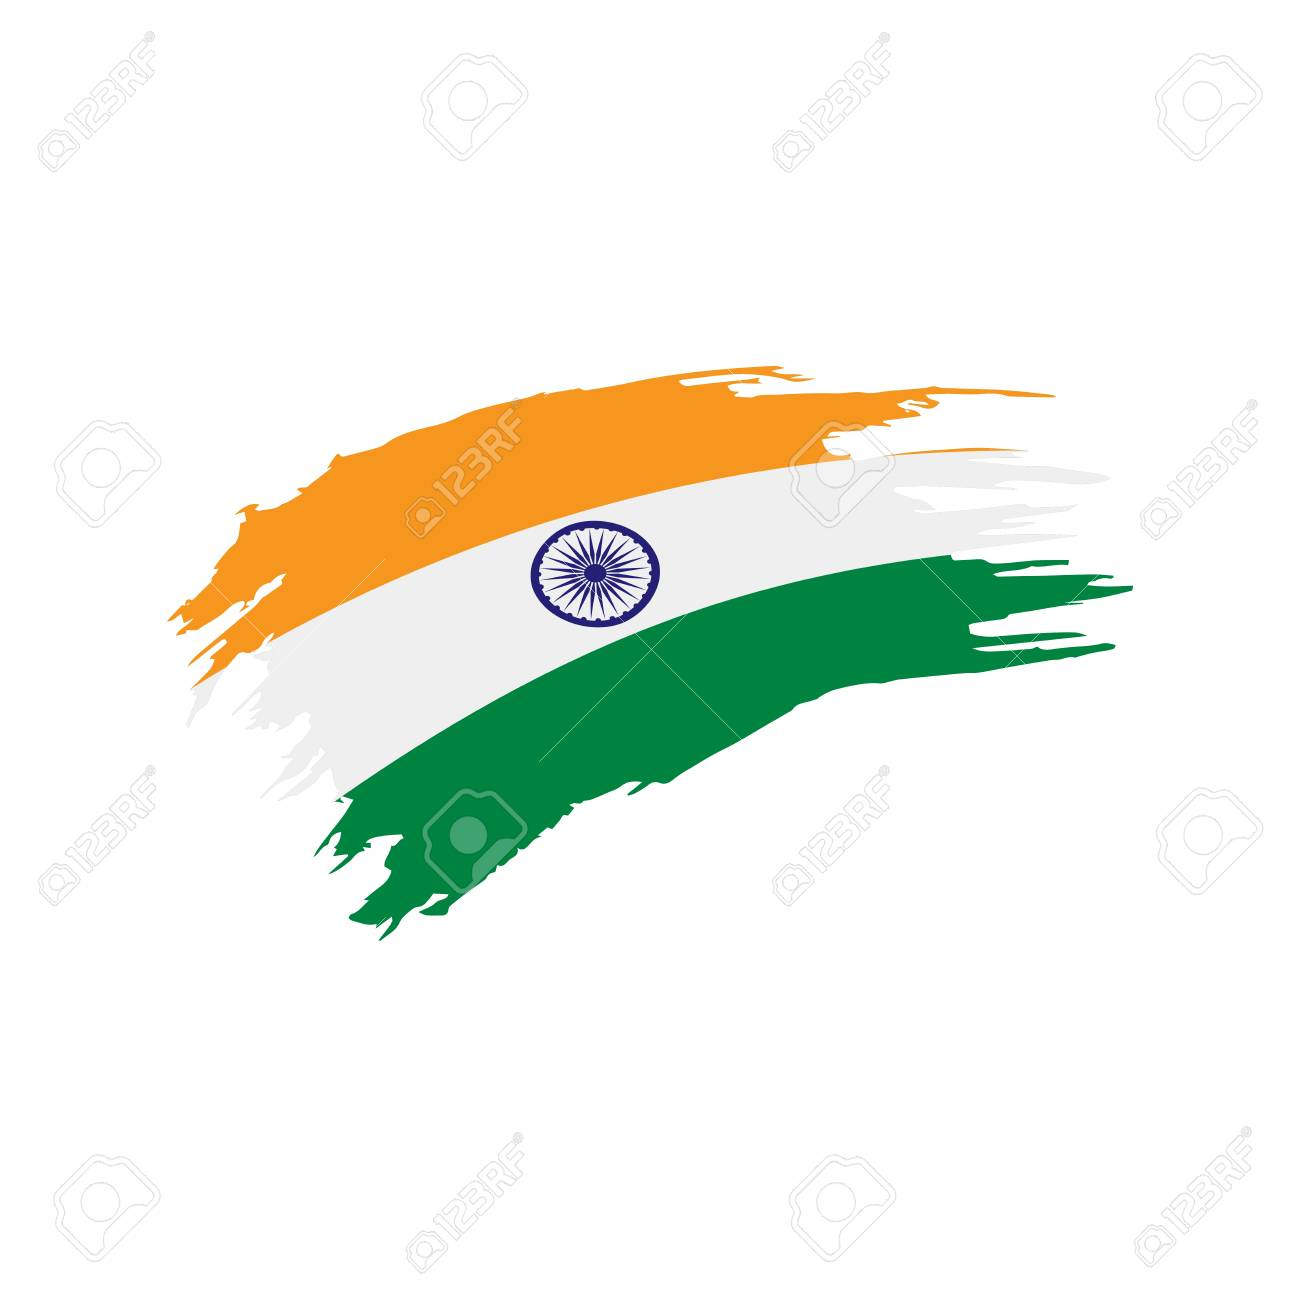 India Flag Vector Illustration On A White Background Royalty Free Cliparts Vectors And Stock Illustration Image 96601074